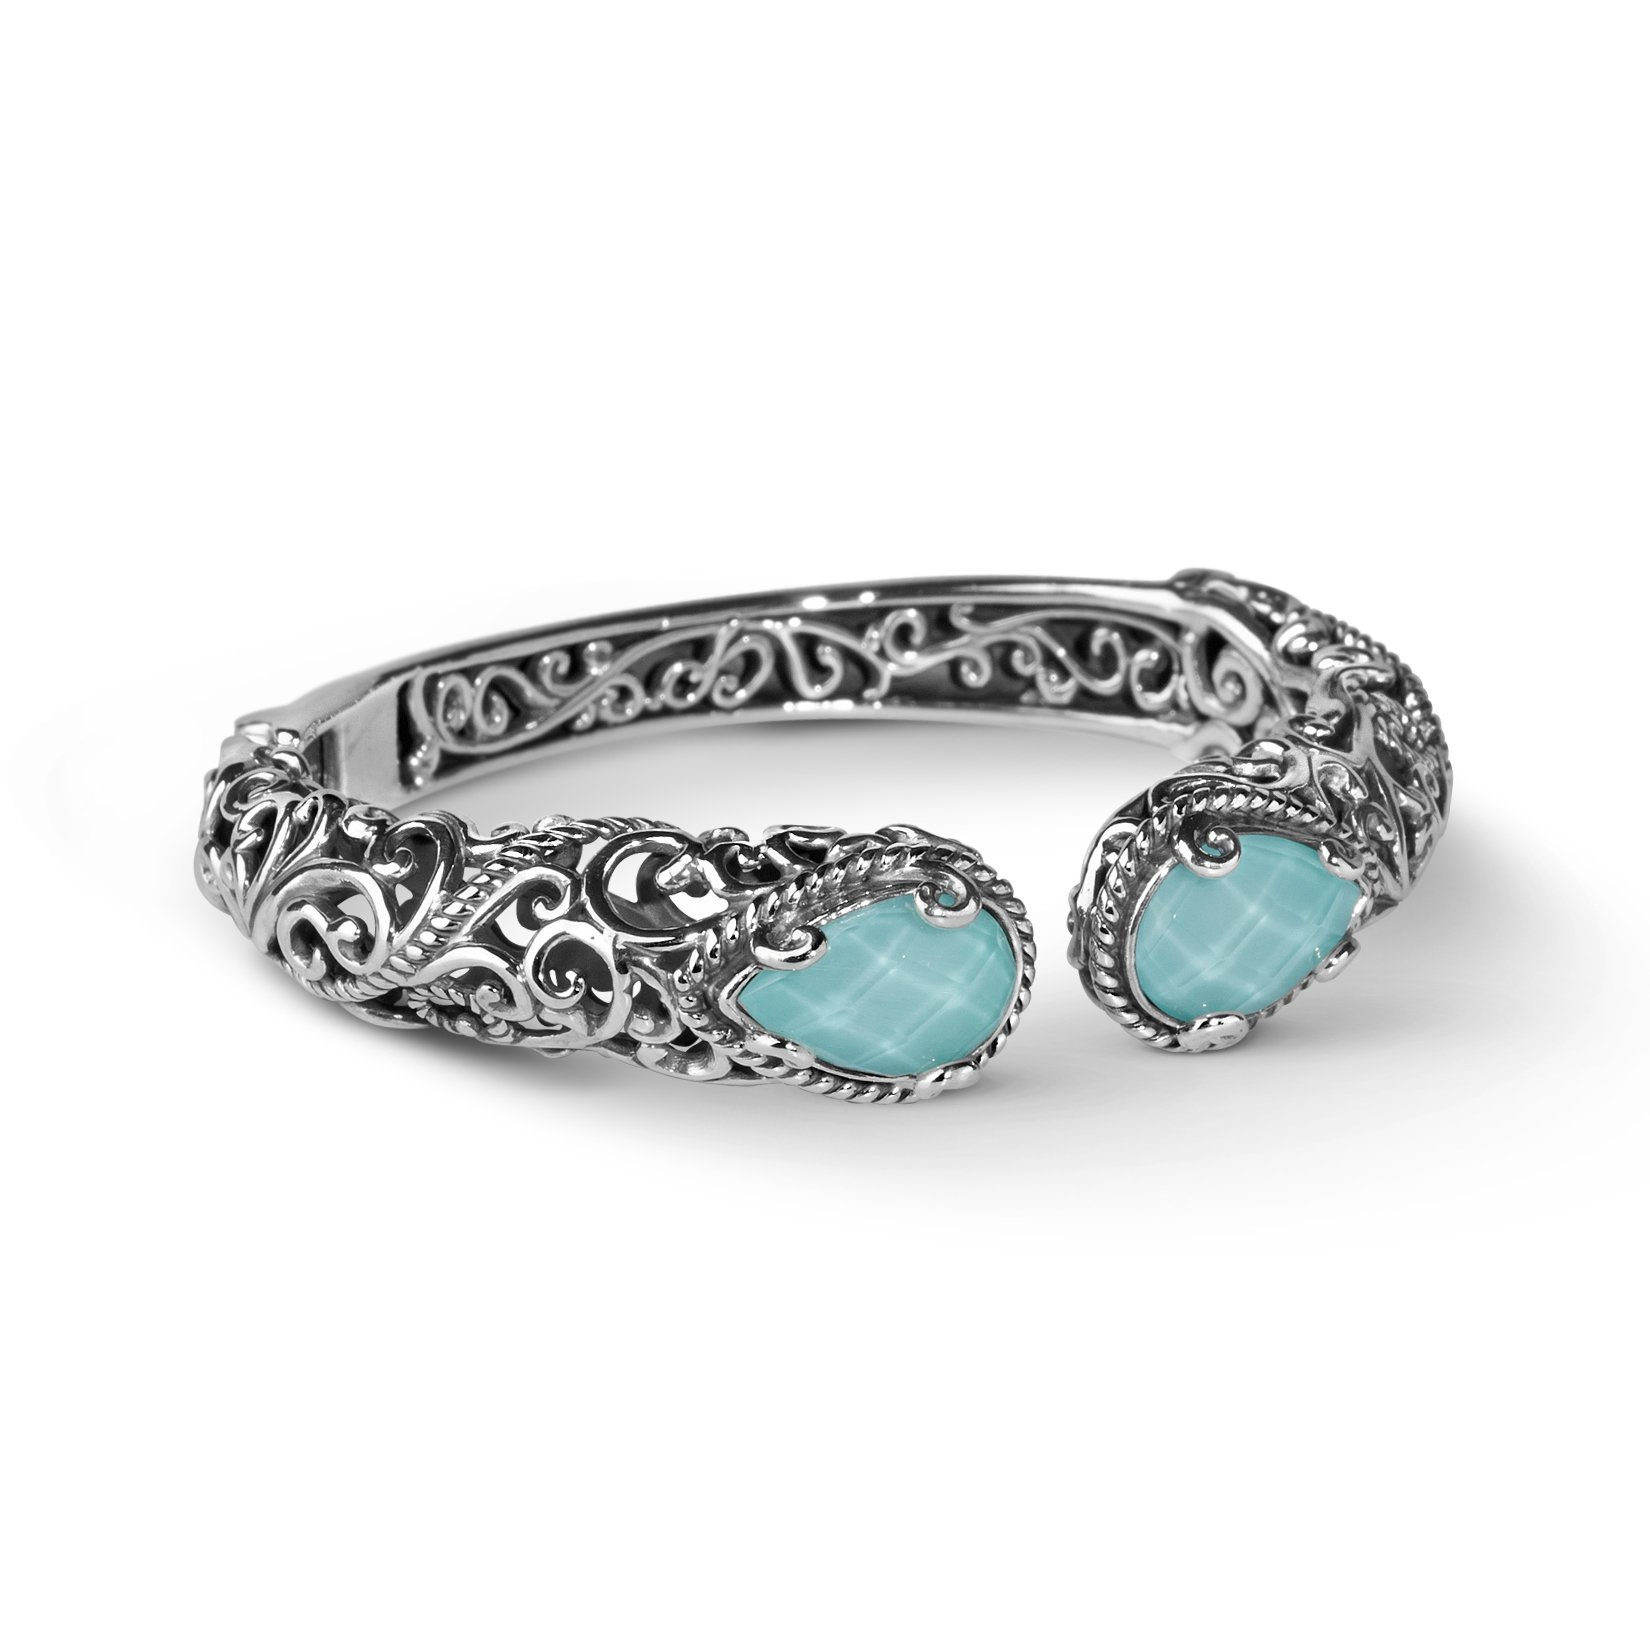 Carolyn Pollack Signature Sterling Silver Turquoise Doublet Hinged Cuff Bracelet, Small